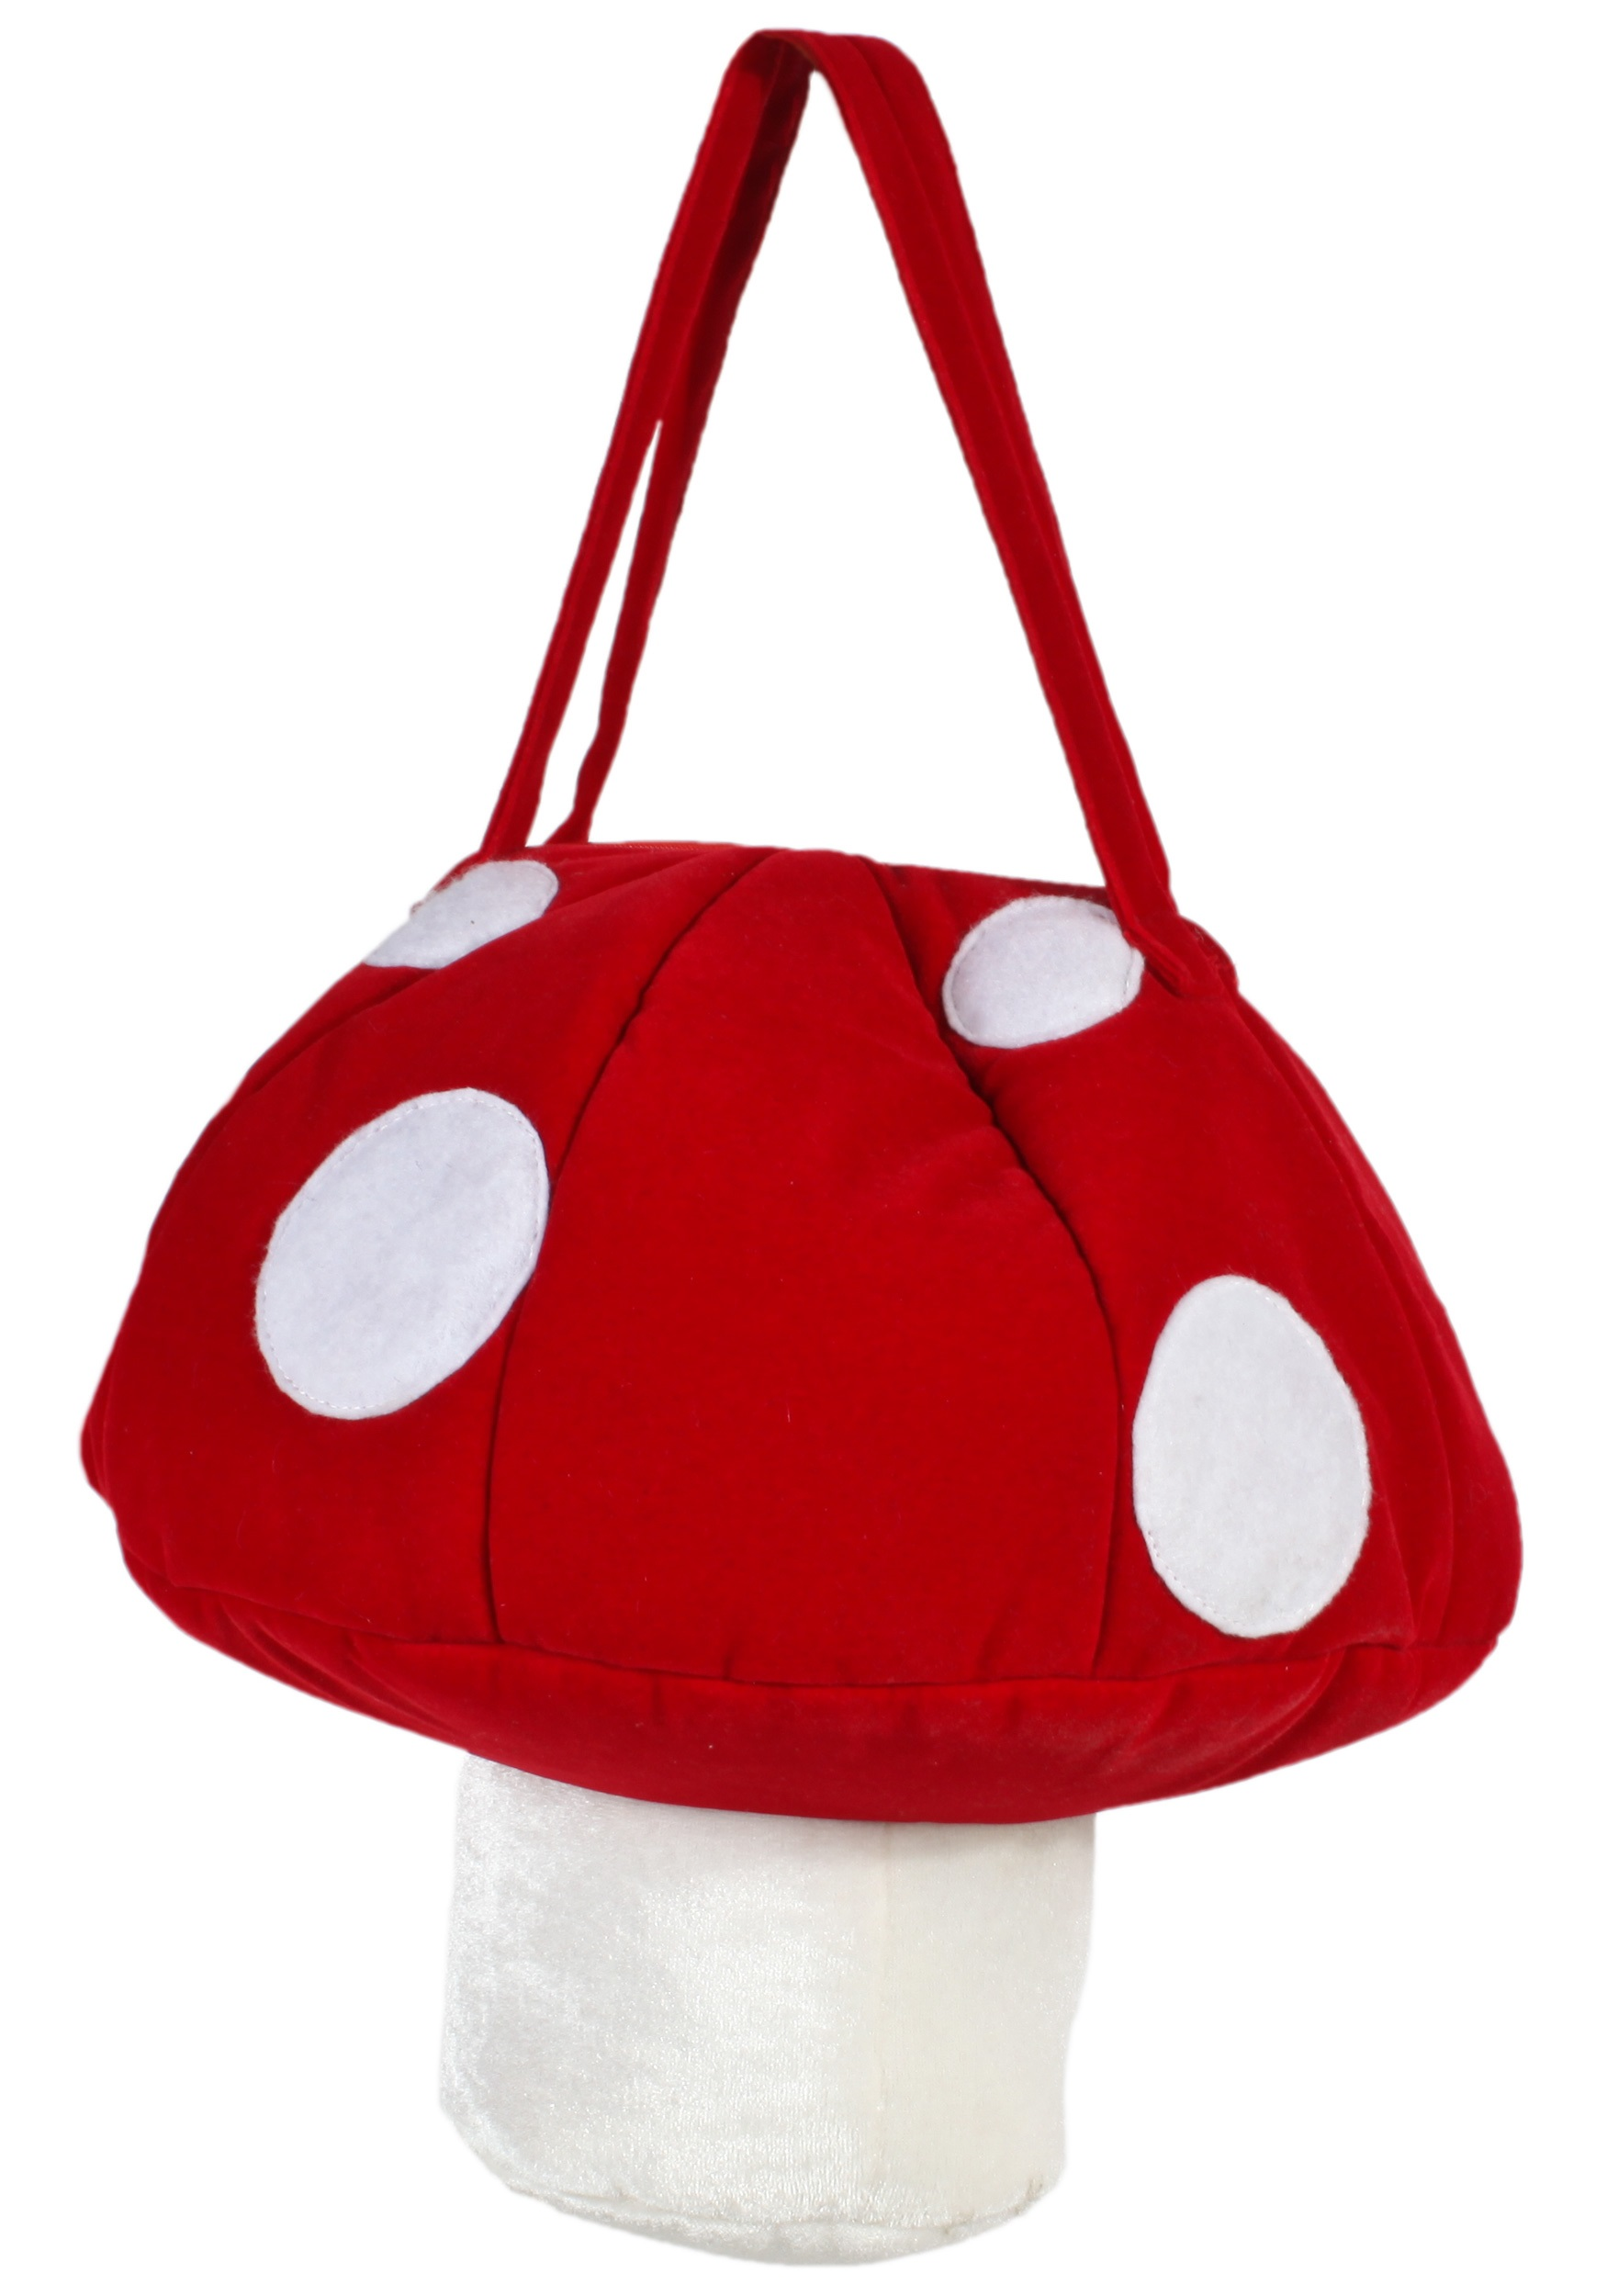 Womens Mushroom Purse Handbag photo